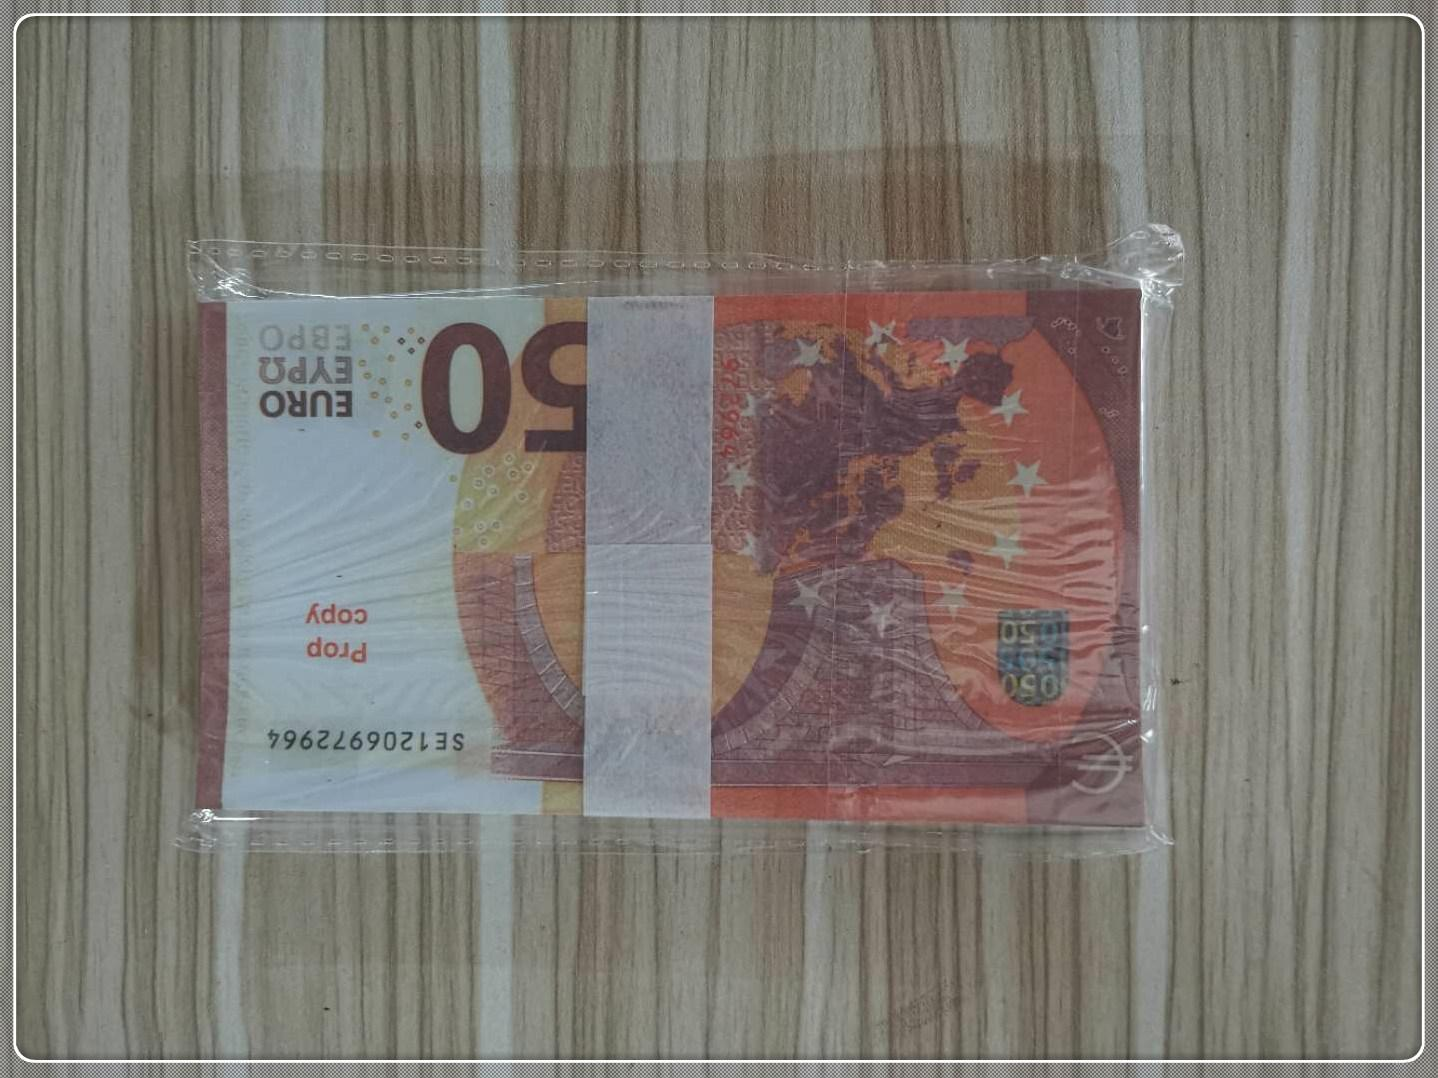 Bar Prop Copy Banknote Euro Counterfeit 50 Shooting Prop Toy Atmosphere LE50-09 Euboh Counterfeit Stage MV Hot Party Hfjpr